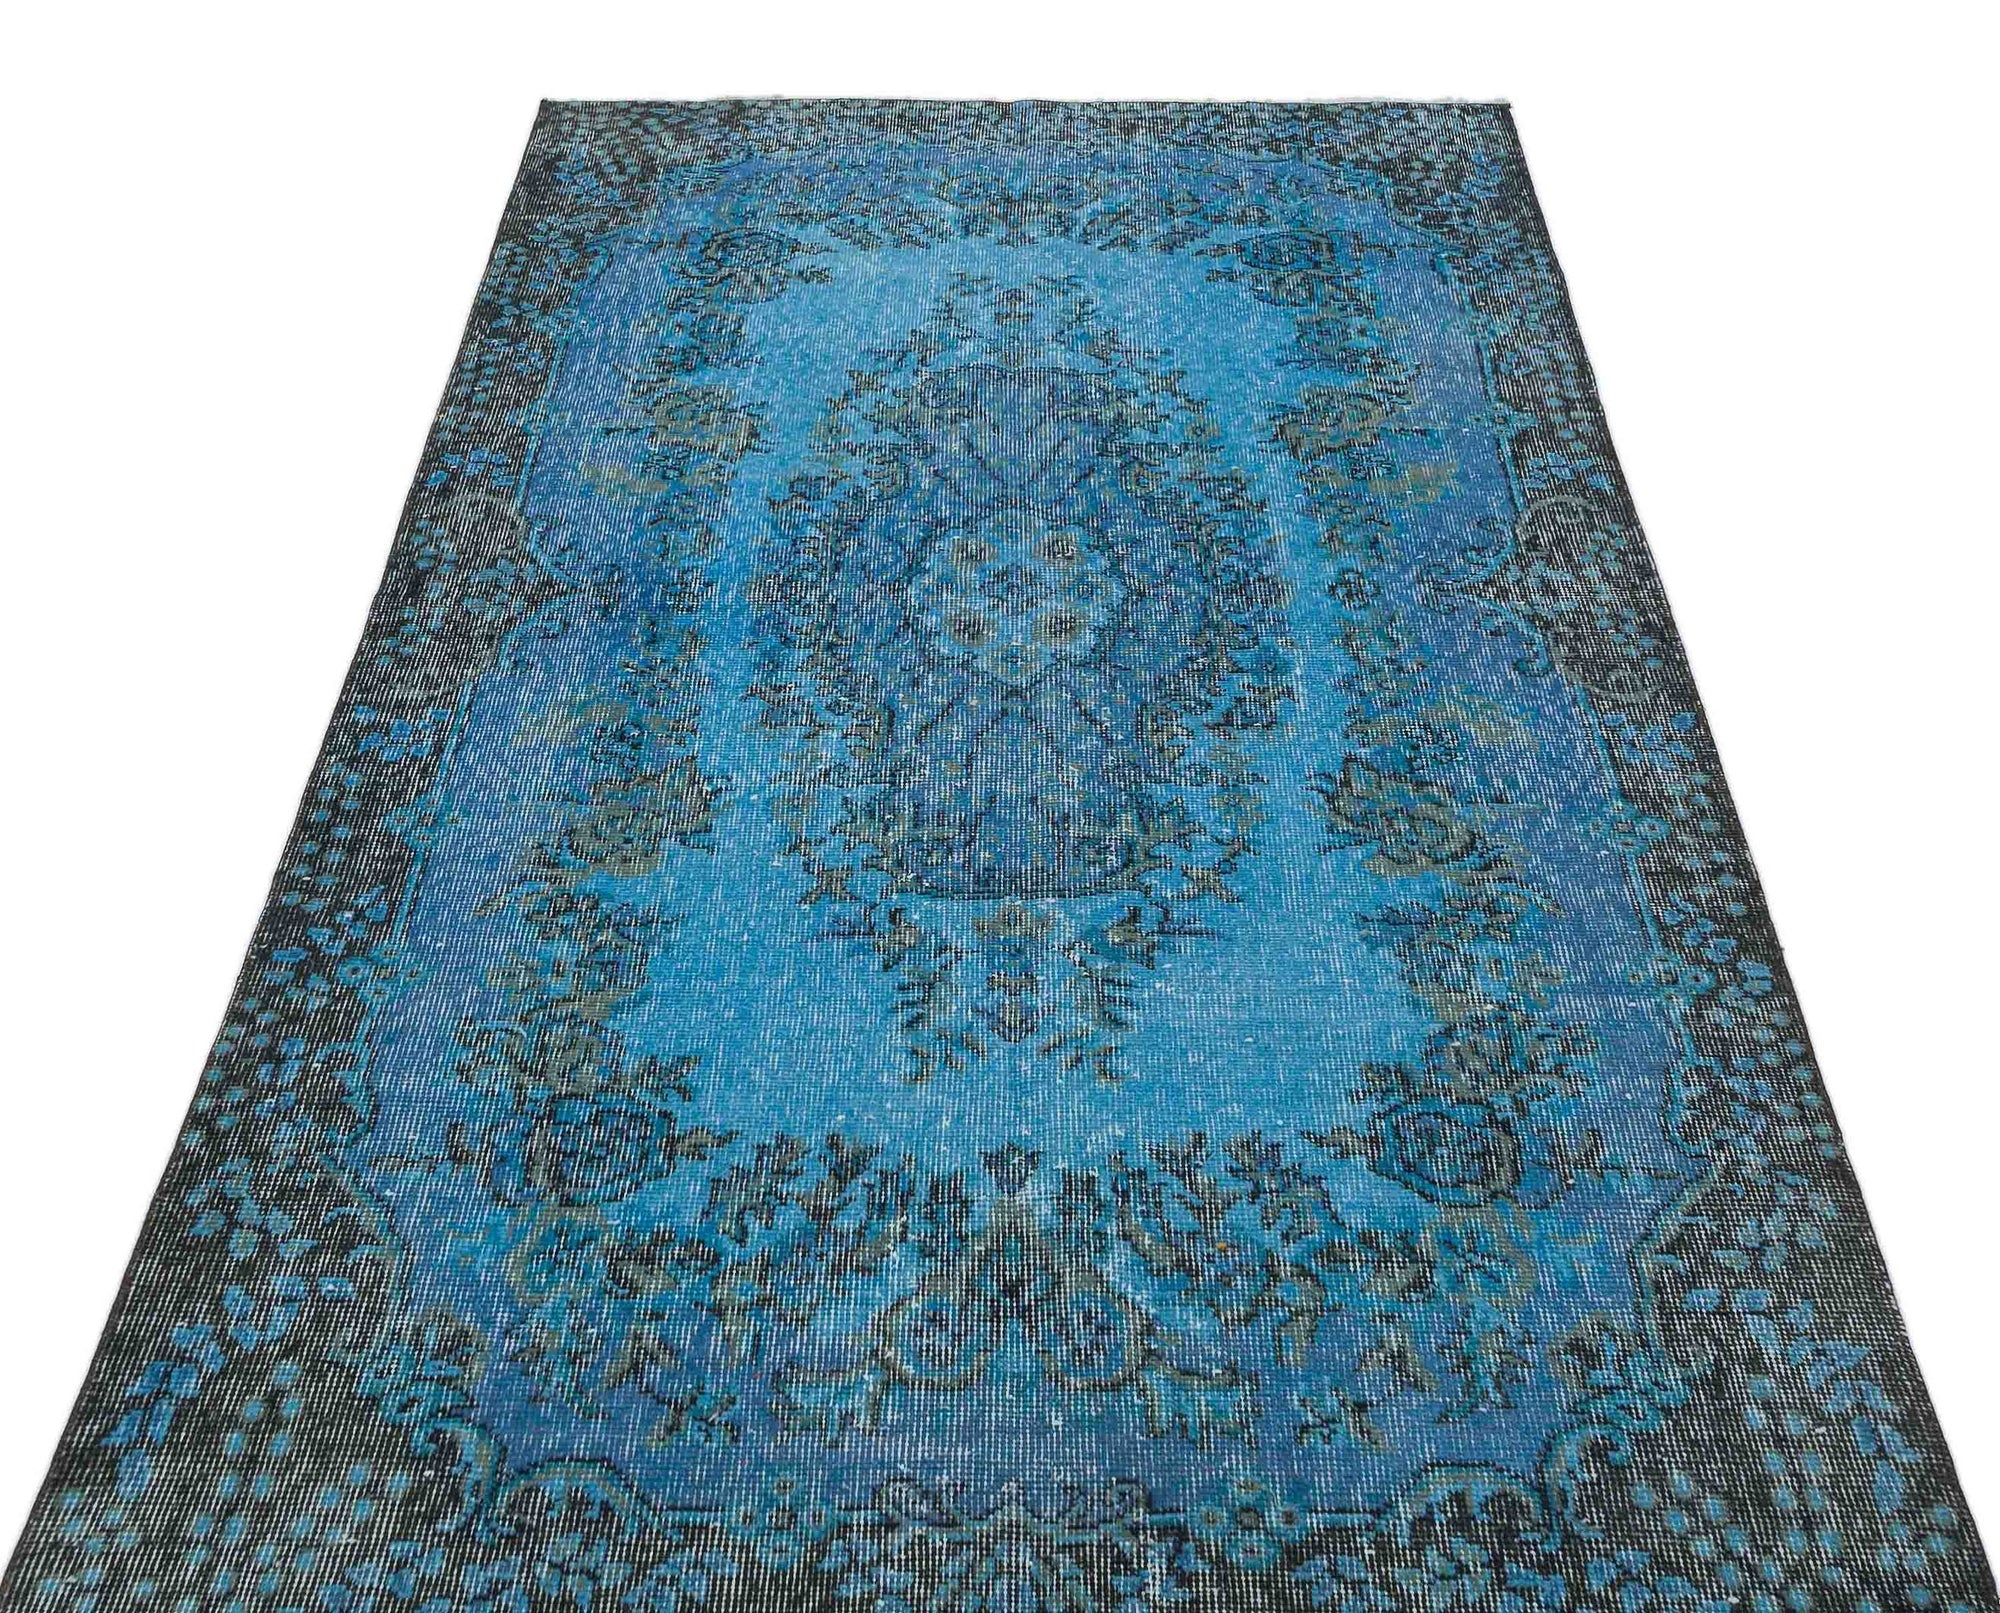 118x212 CM BURSA HANDMADE OVER DYED RUG 1941 -  118x212 سم سجاده صناعه يدويه برسا مصبوغه - Shop Online Furniture and Home Decor Store in Dubai, UAE at ebarza